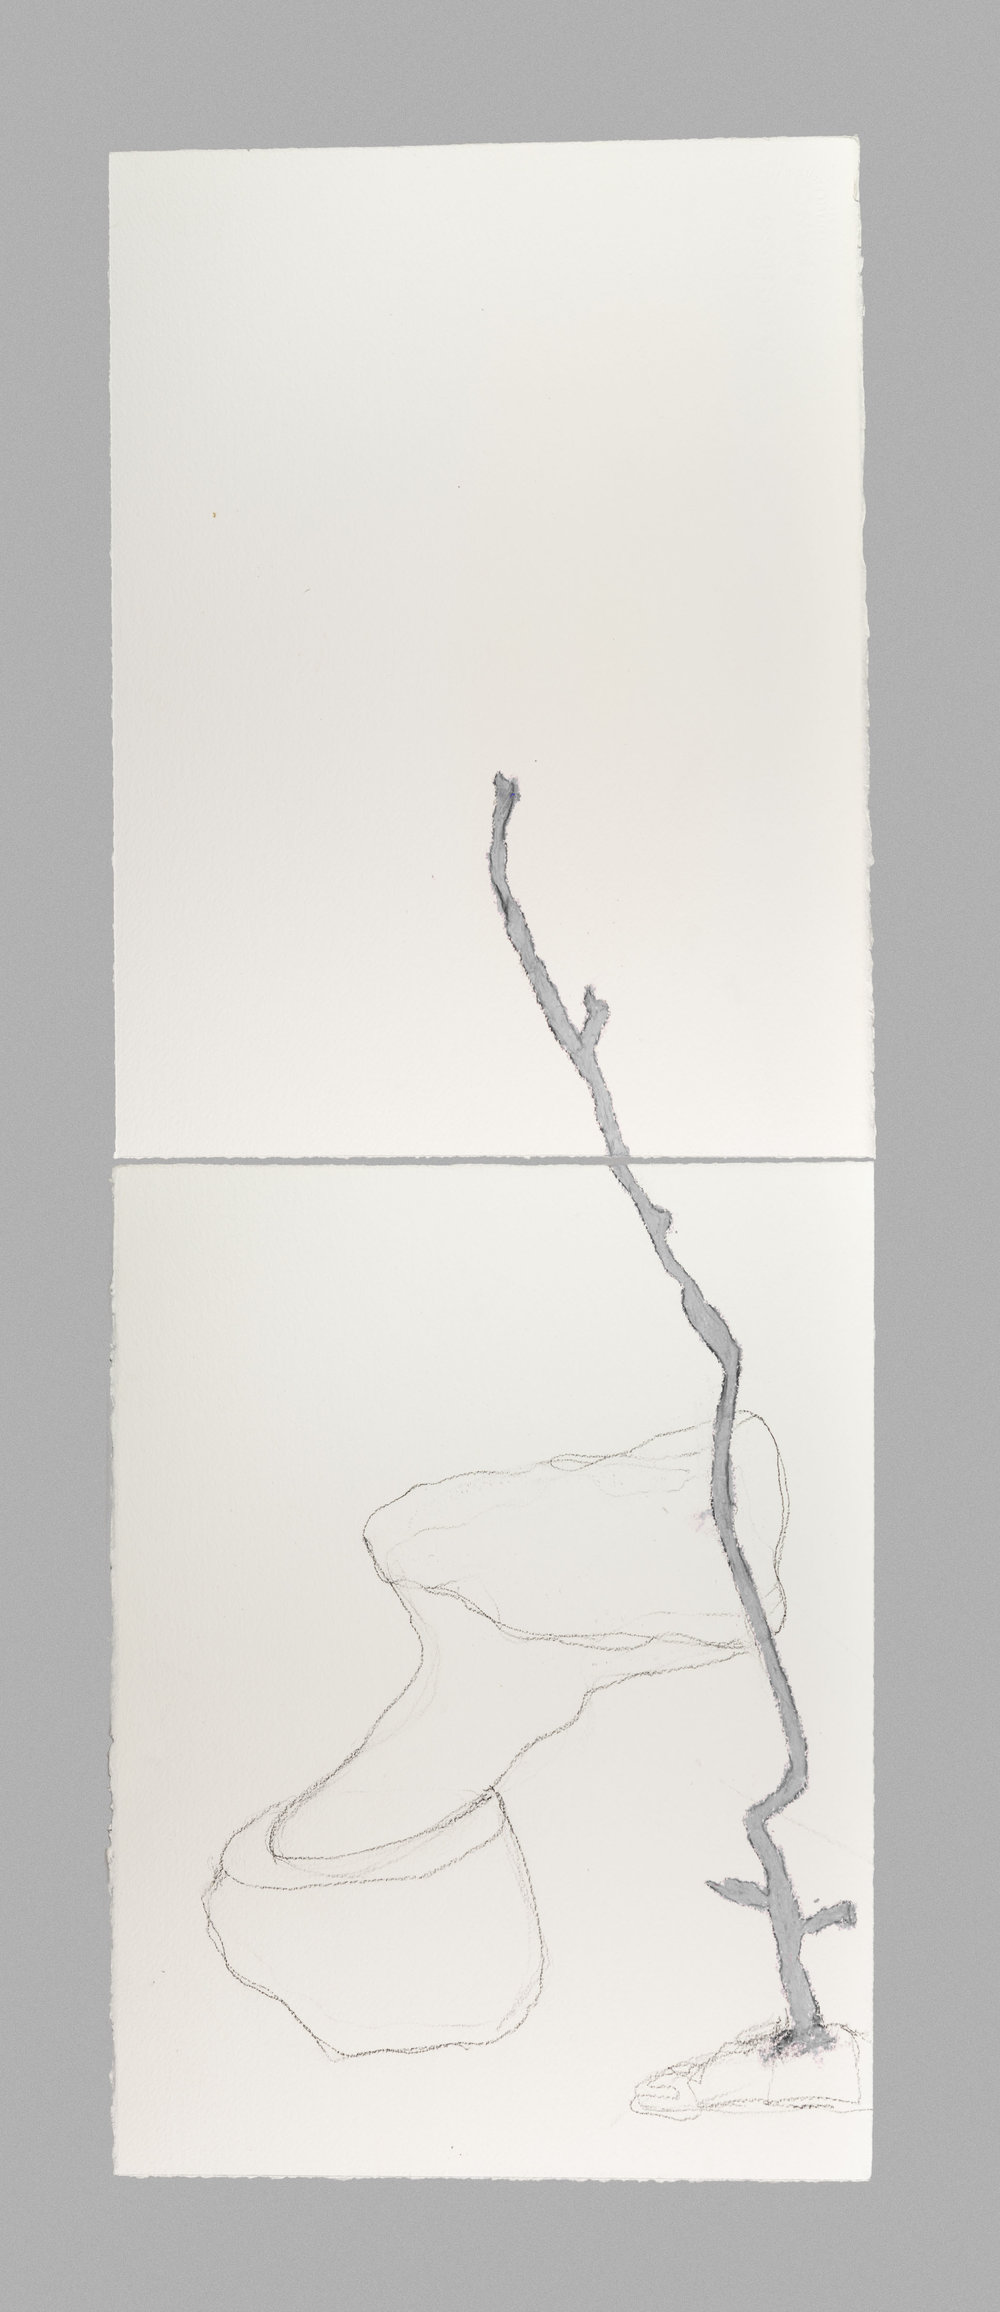 Finding Form #14   Pencil and cray-pas on paper  15 x 44  2018